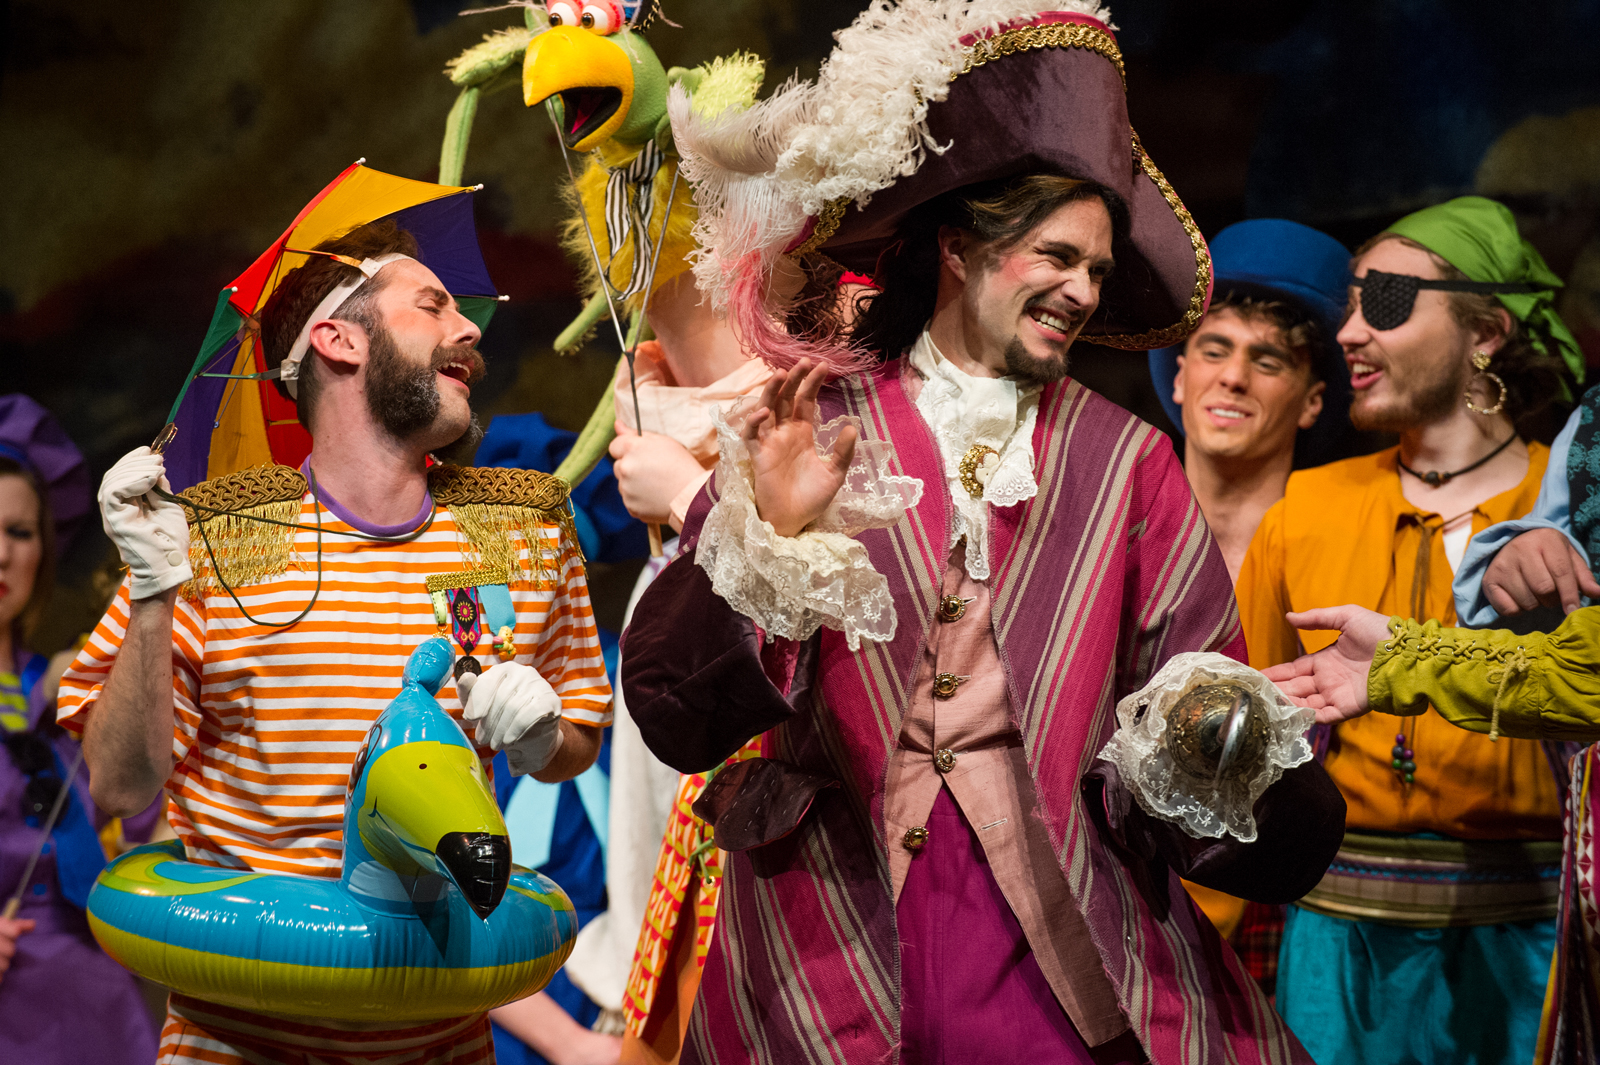 Theatre students in pirate costumes